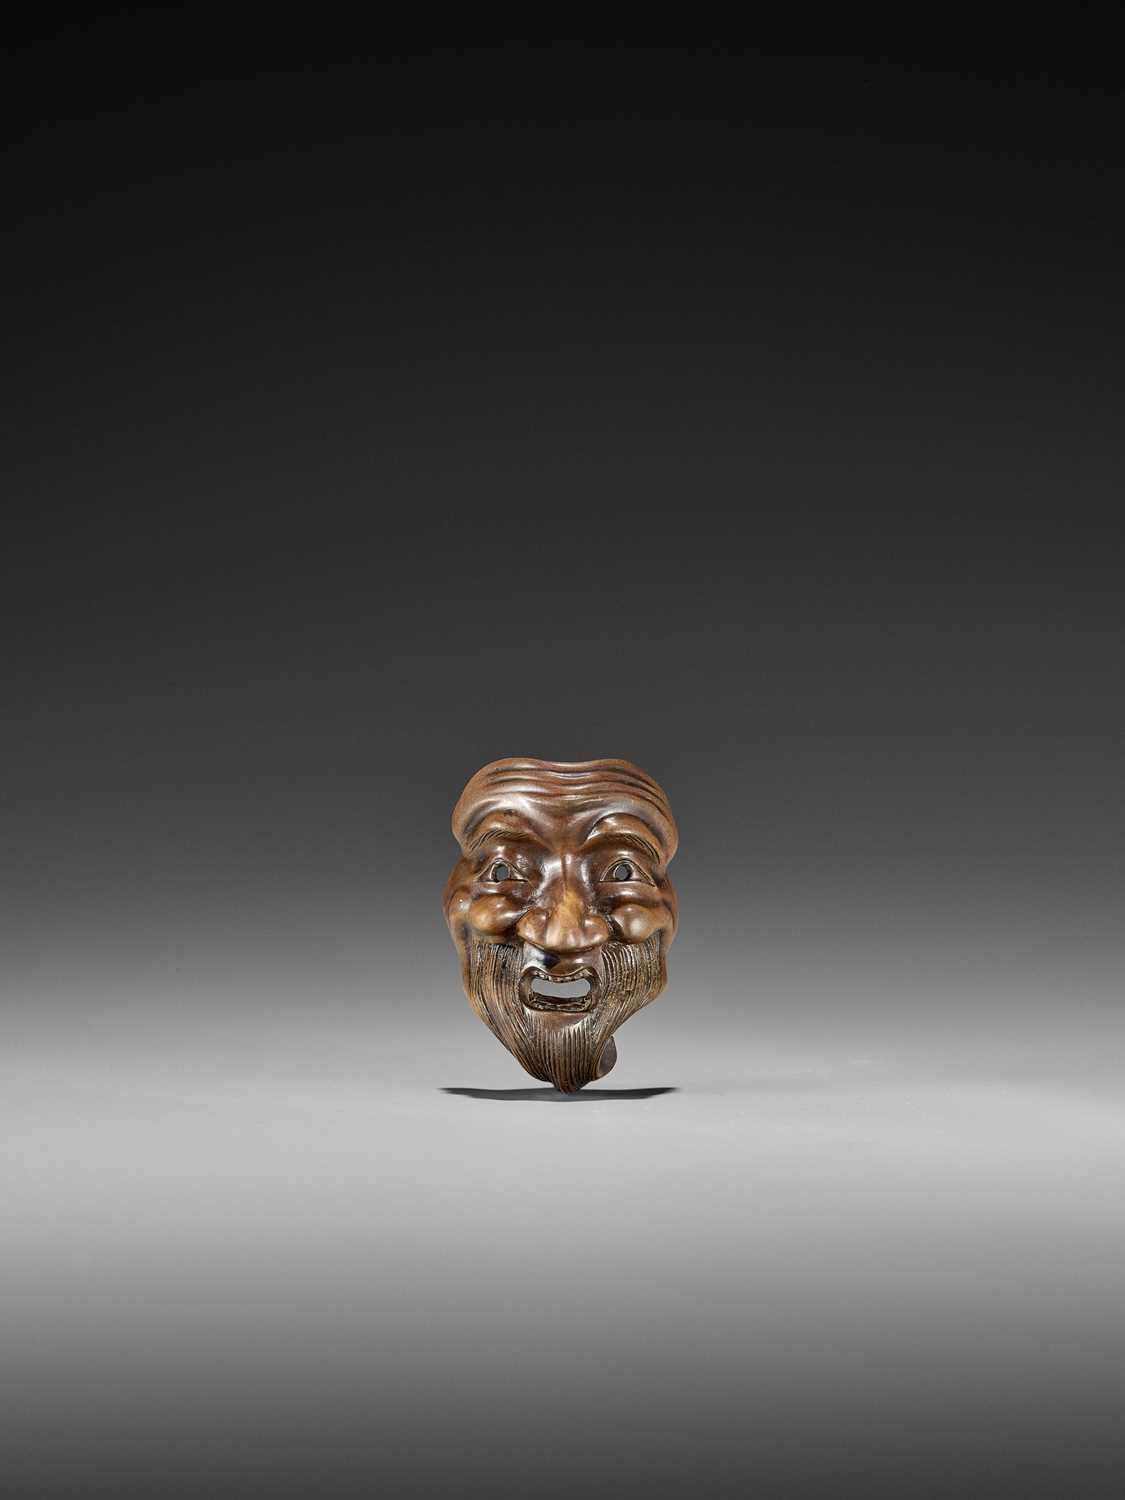 235 - NAITO TOYOMASA: AN IMPORTANT WOOD MASK NETSUKE OF WARAI JO TYPE DEPICTING A SELF-PORTRAIT OF THE ARTIST, THE REVERSE CARVED AS HIS GHOST